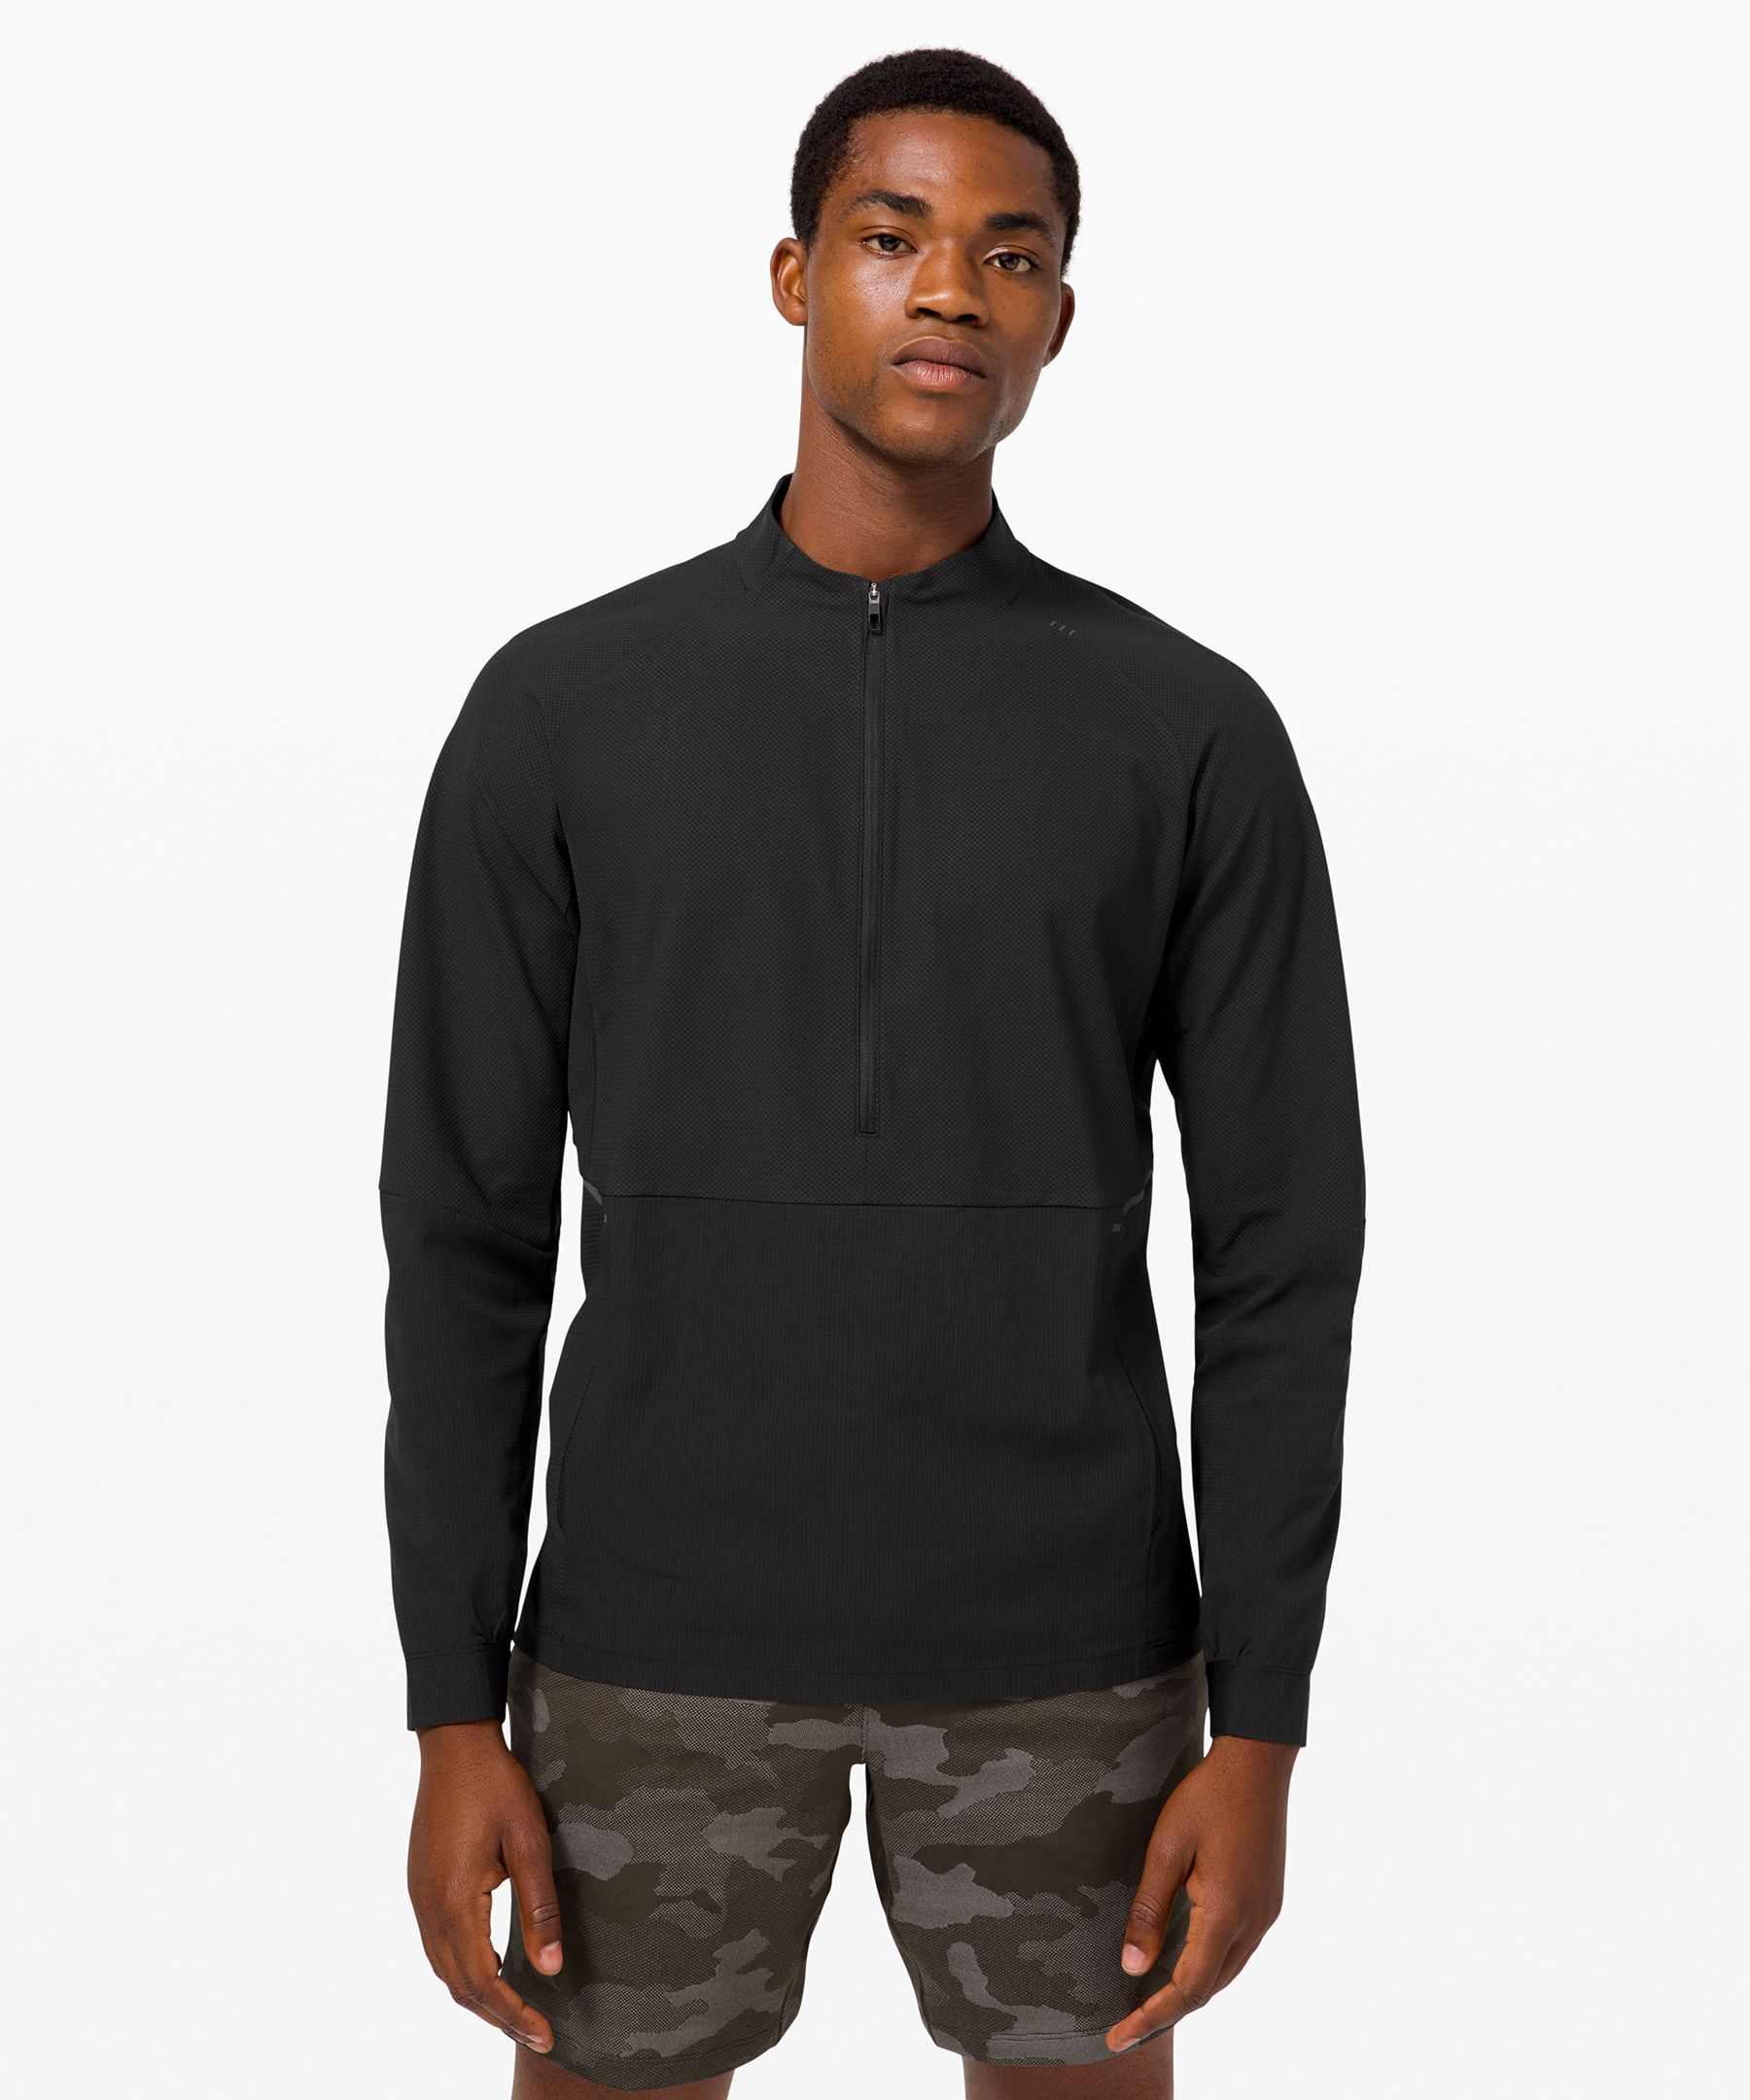 Greet the great outdoors in this water-repellent half zip. Secure pockets keep your essentials accessible on the trail or the court.